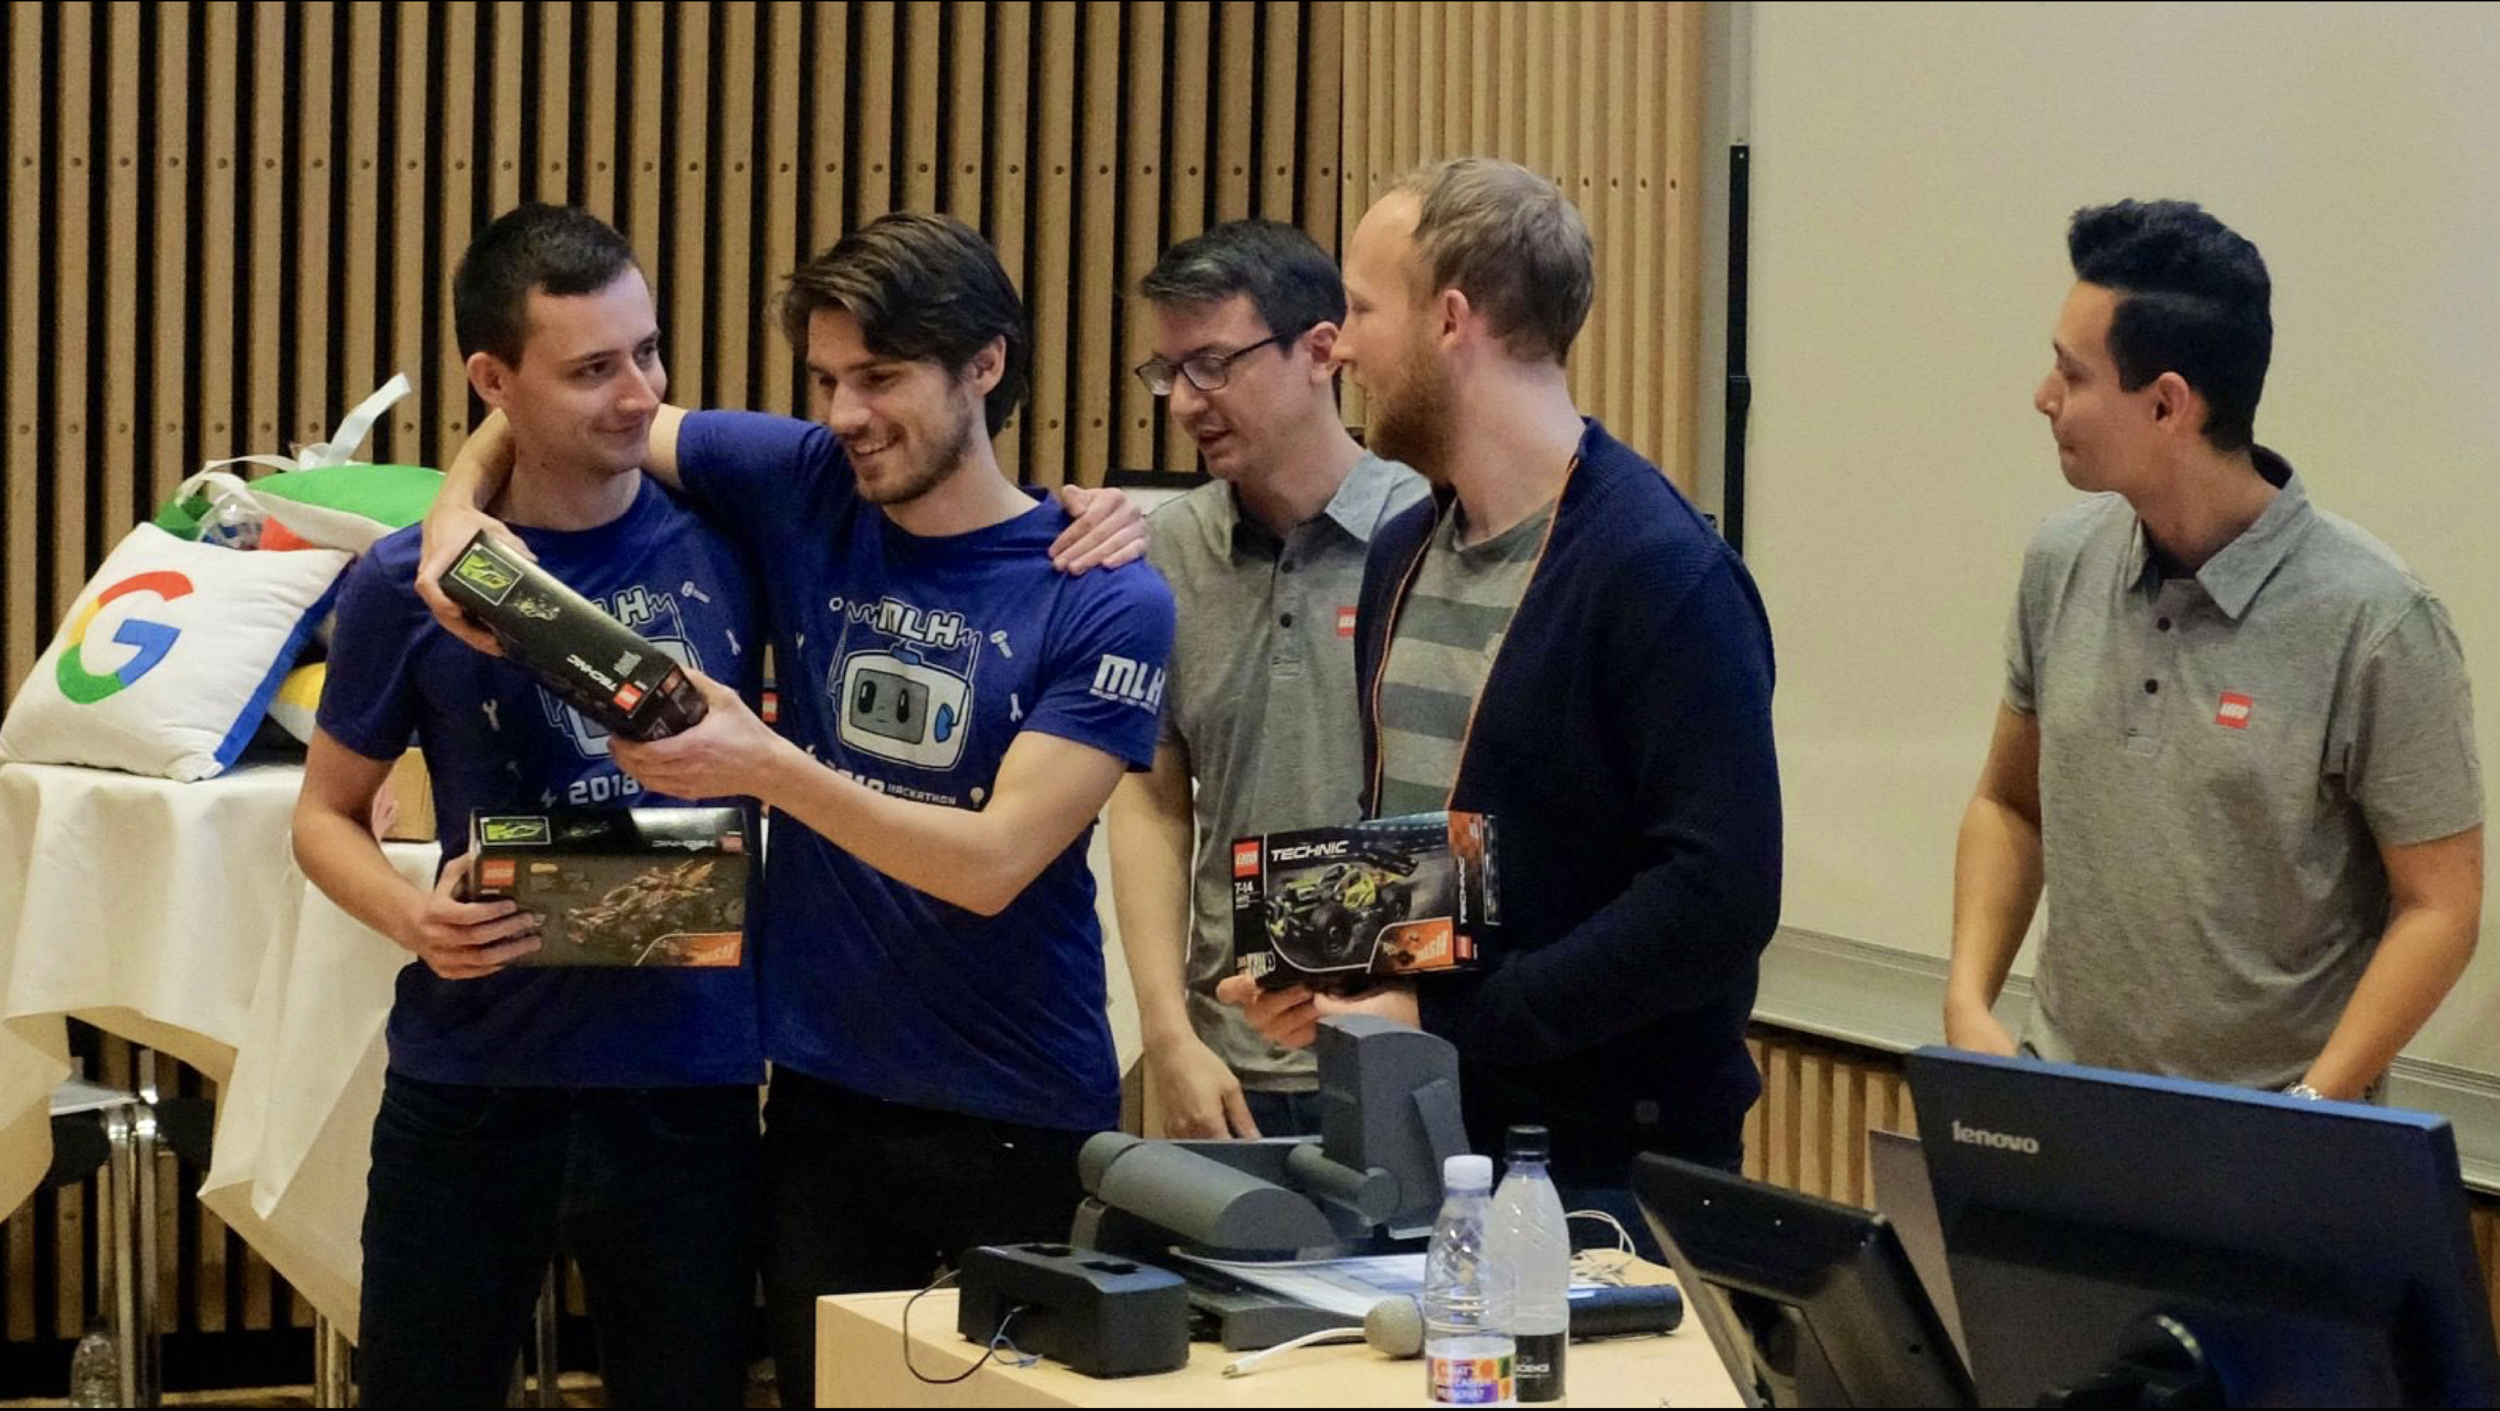 We were 1st place in the LEGO Education category and 2nd place for the overall hackathon.